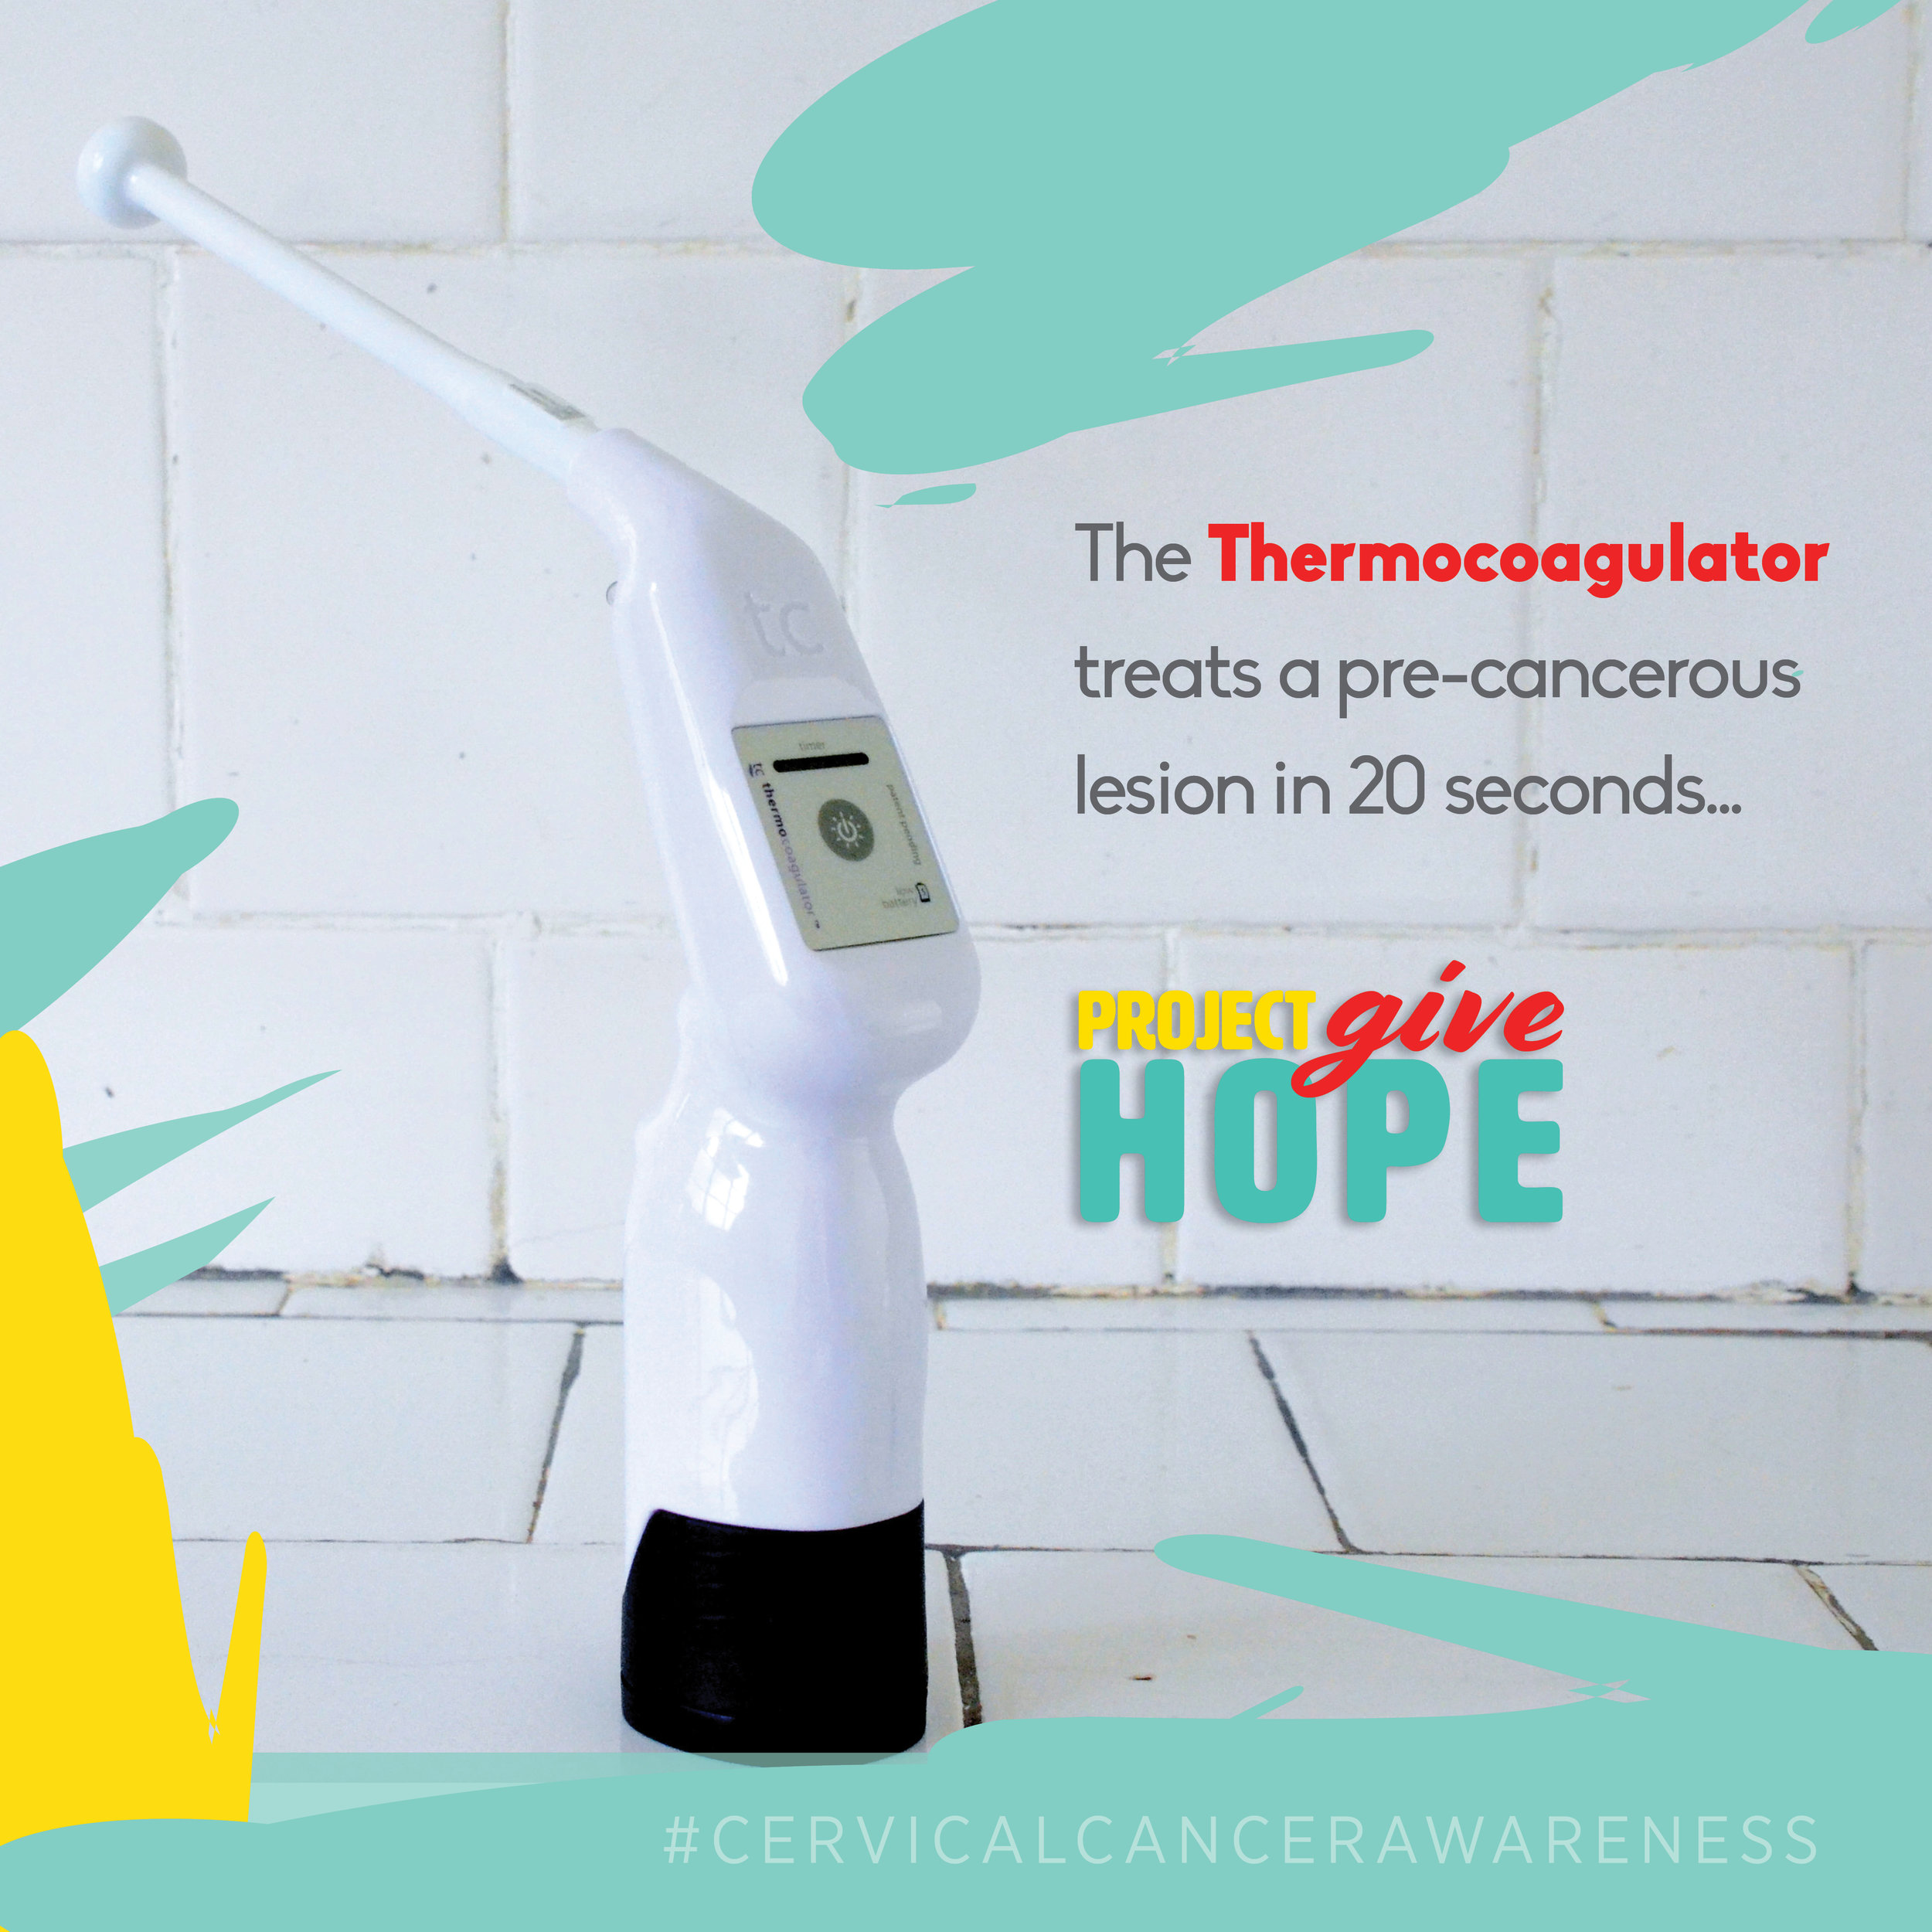 The  Thermocoagulator  treats a pre-cancerous lesion in 20 seconds, as compared to the required 11 minutes for cryotherapy. It is currently in 30, third-world countries and other countries are requesting it as well. Each device costs $1,500. Project Give Hope's primary goal is to offer these devices to communities in need.